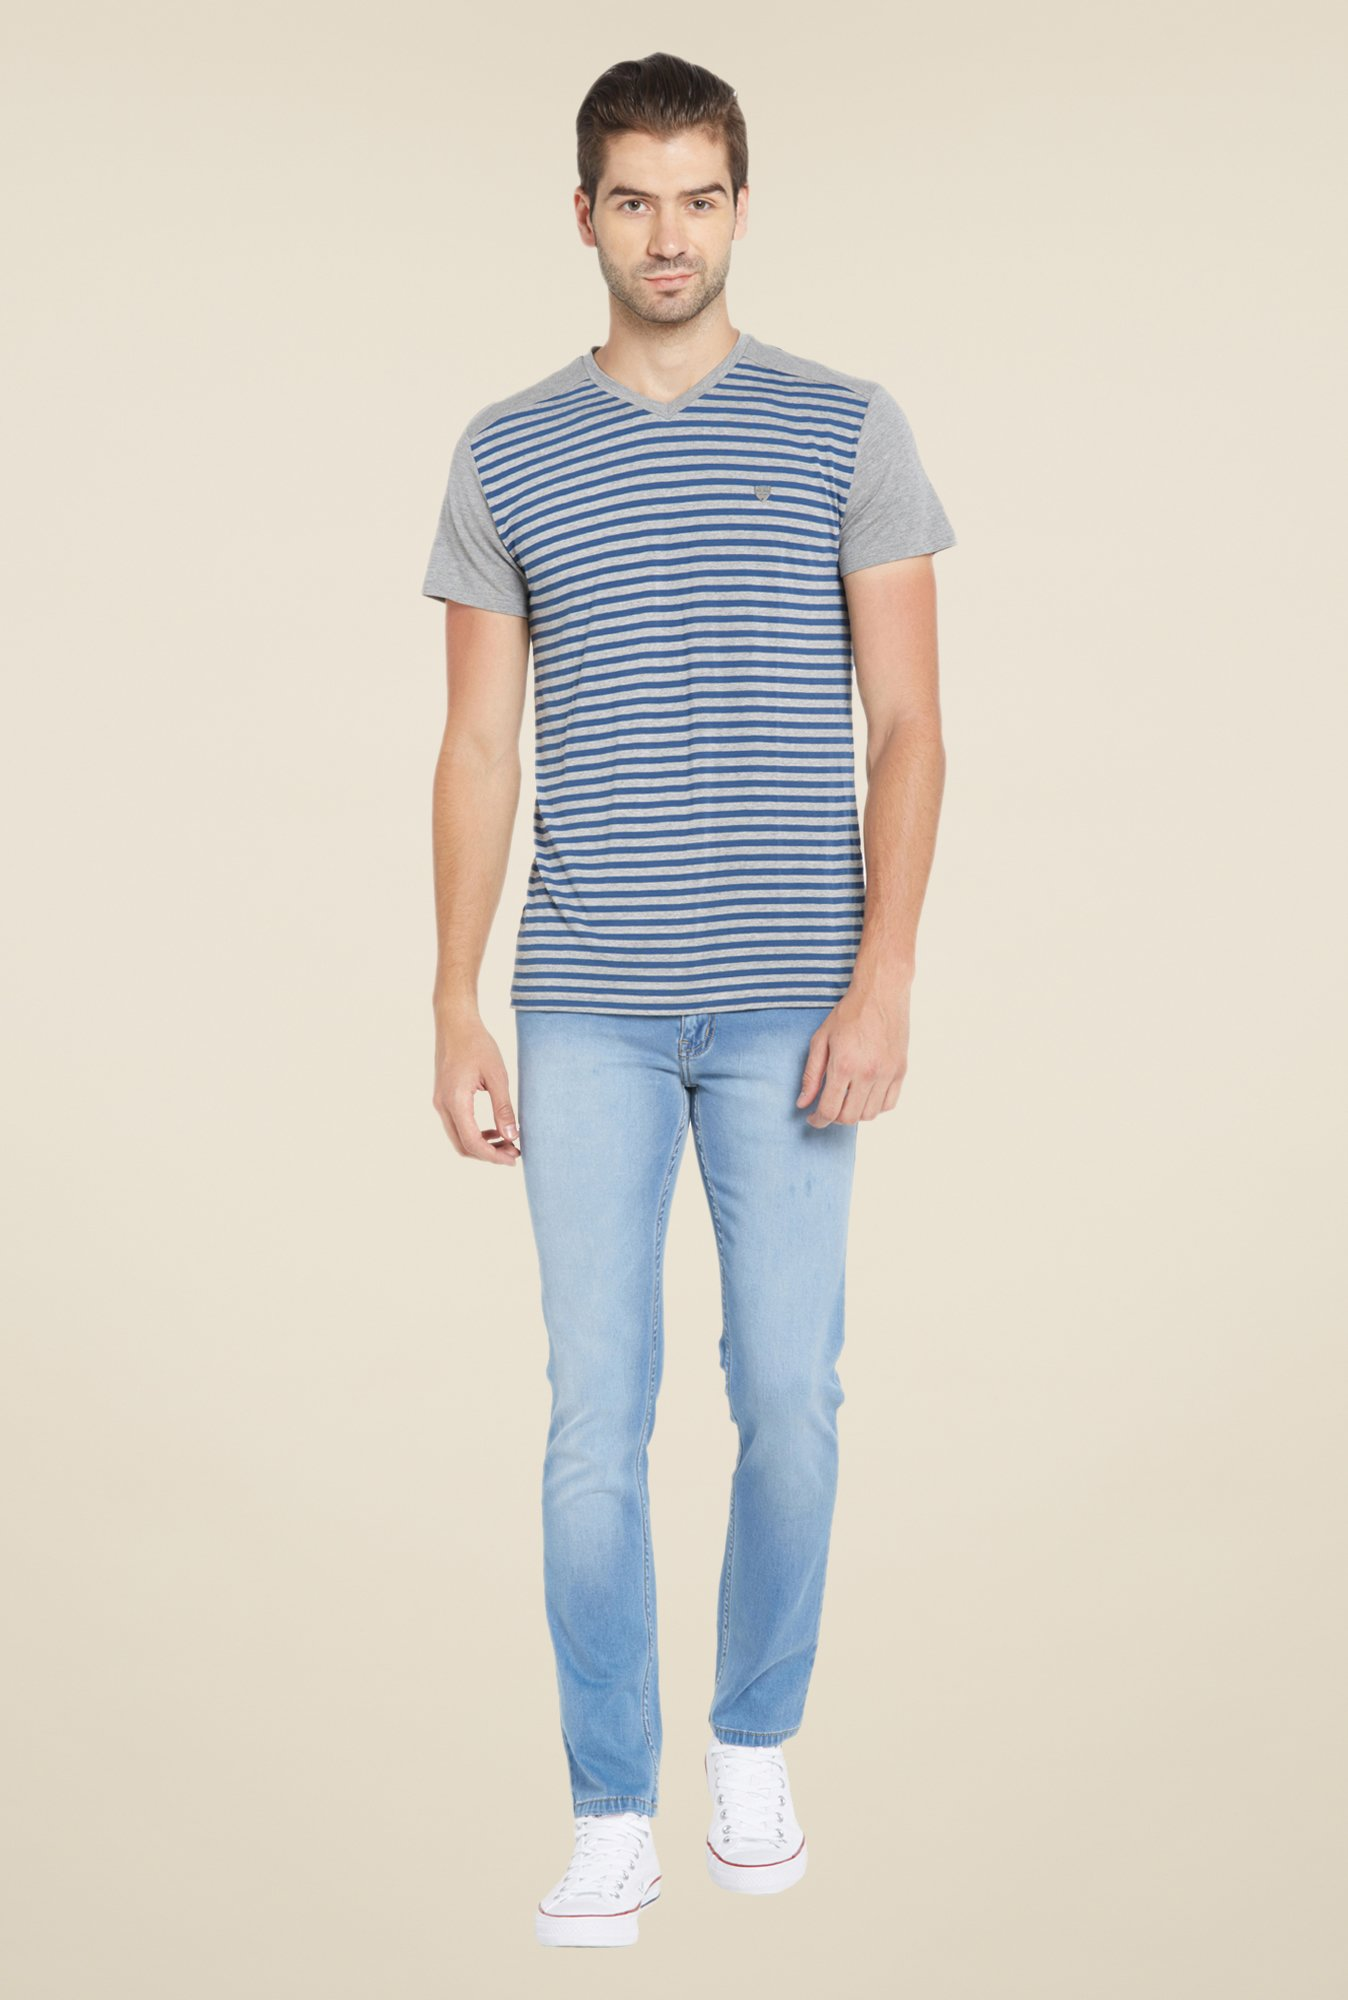 Globus Grey & Blue Striped T Shirt